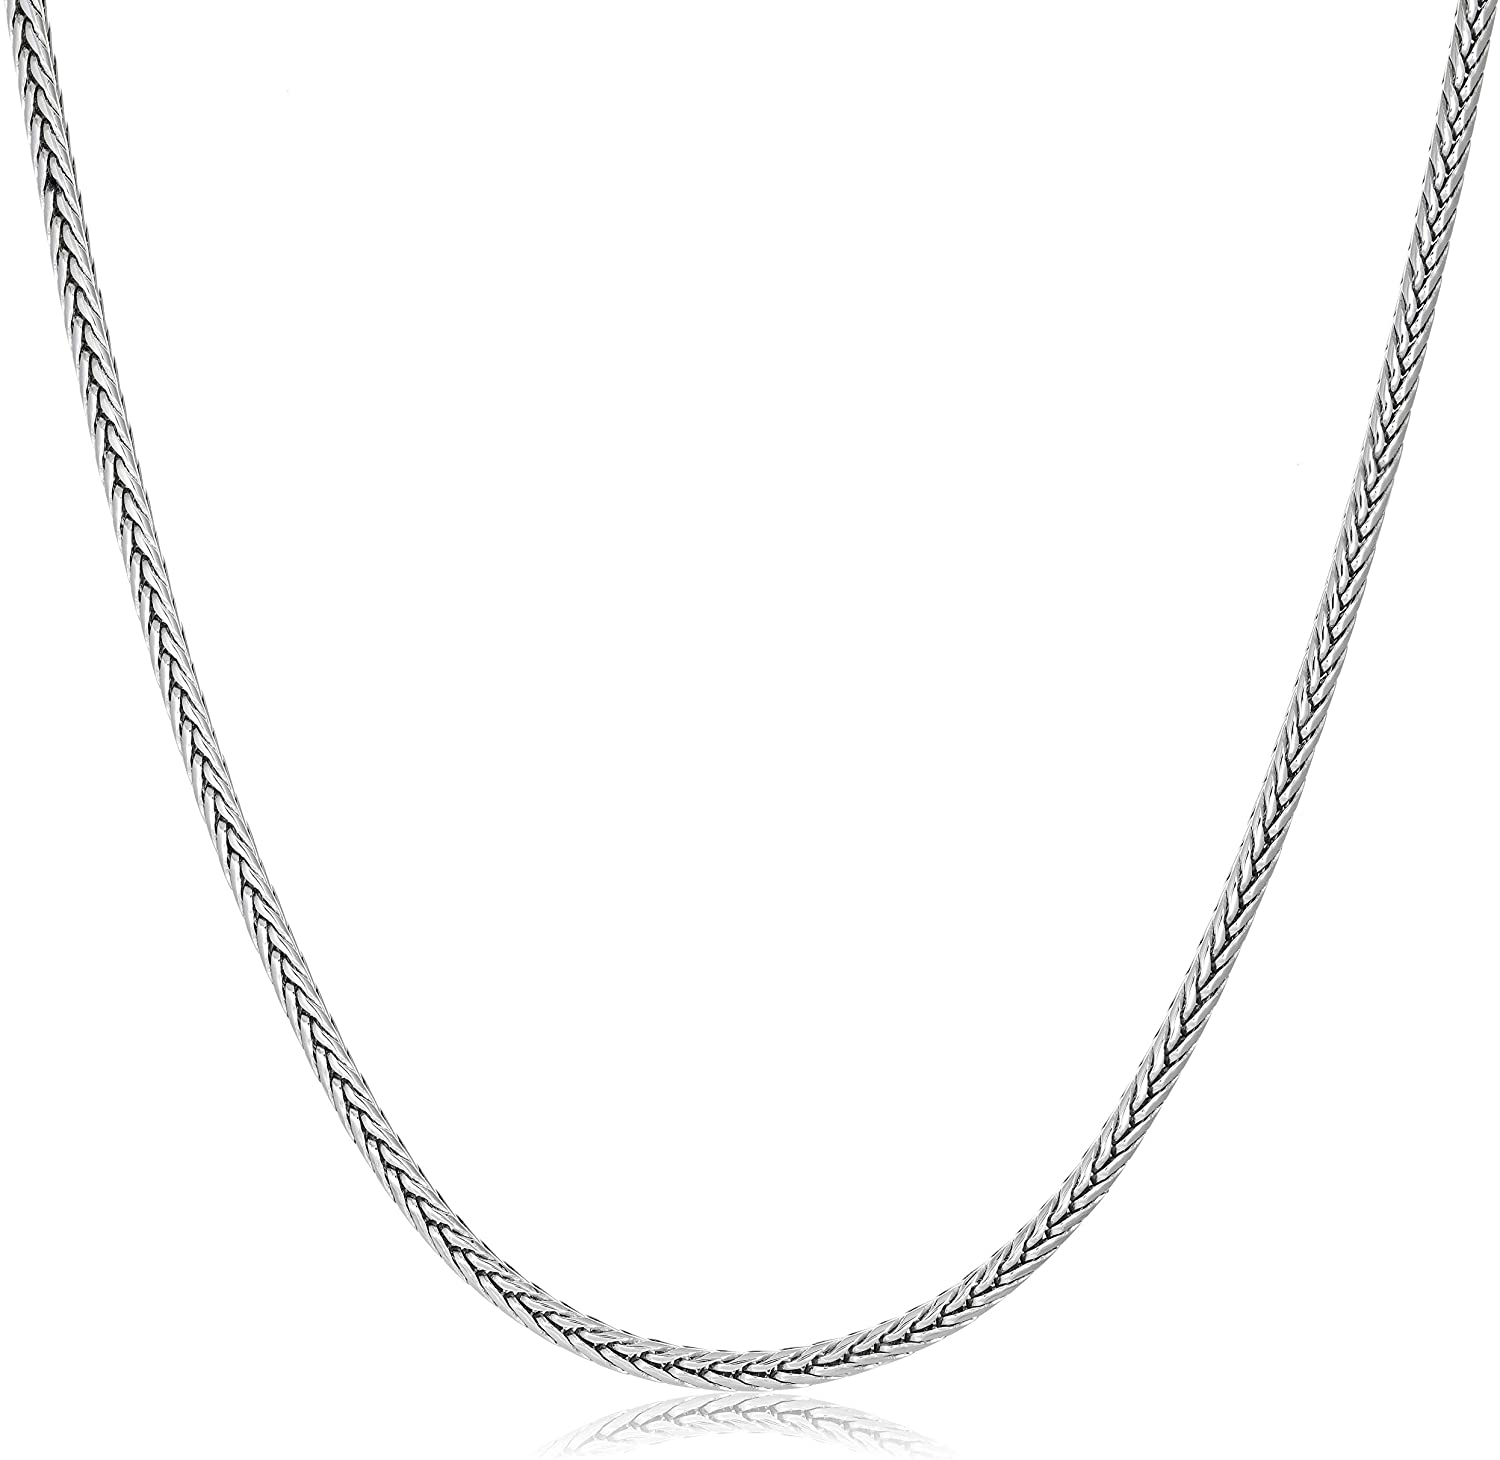 Men's Stainless Steel Thin Wheat Chain Necklace - 3 MM Wide, 24 Inches Length with Lobster Clasp